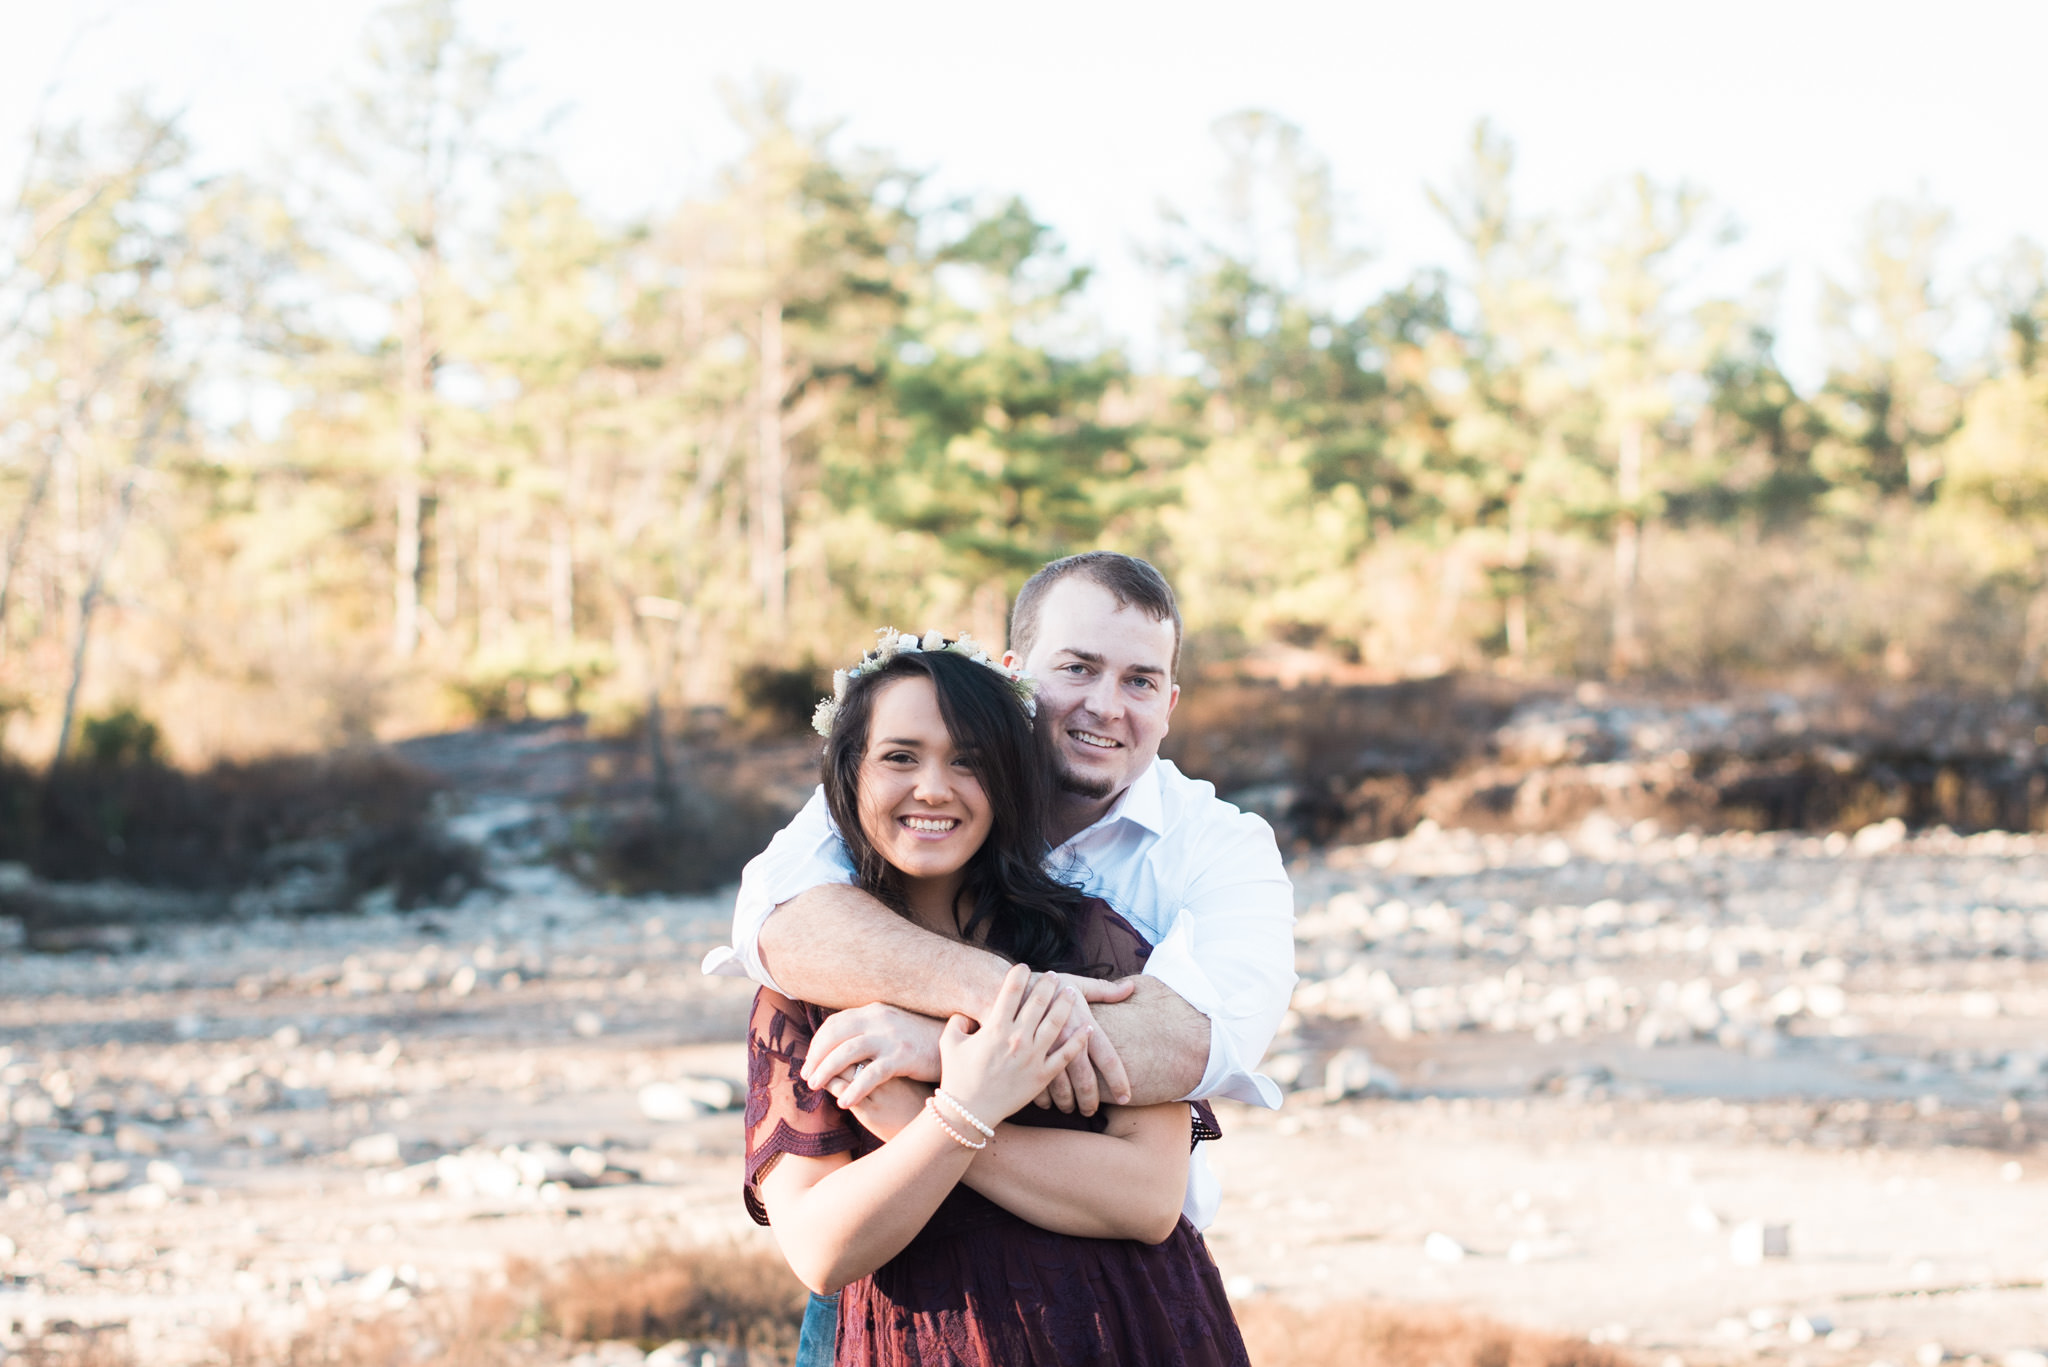 athens-engagement-shoot-10.jpg